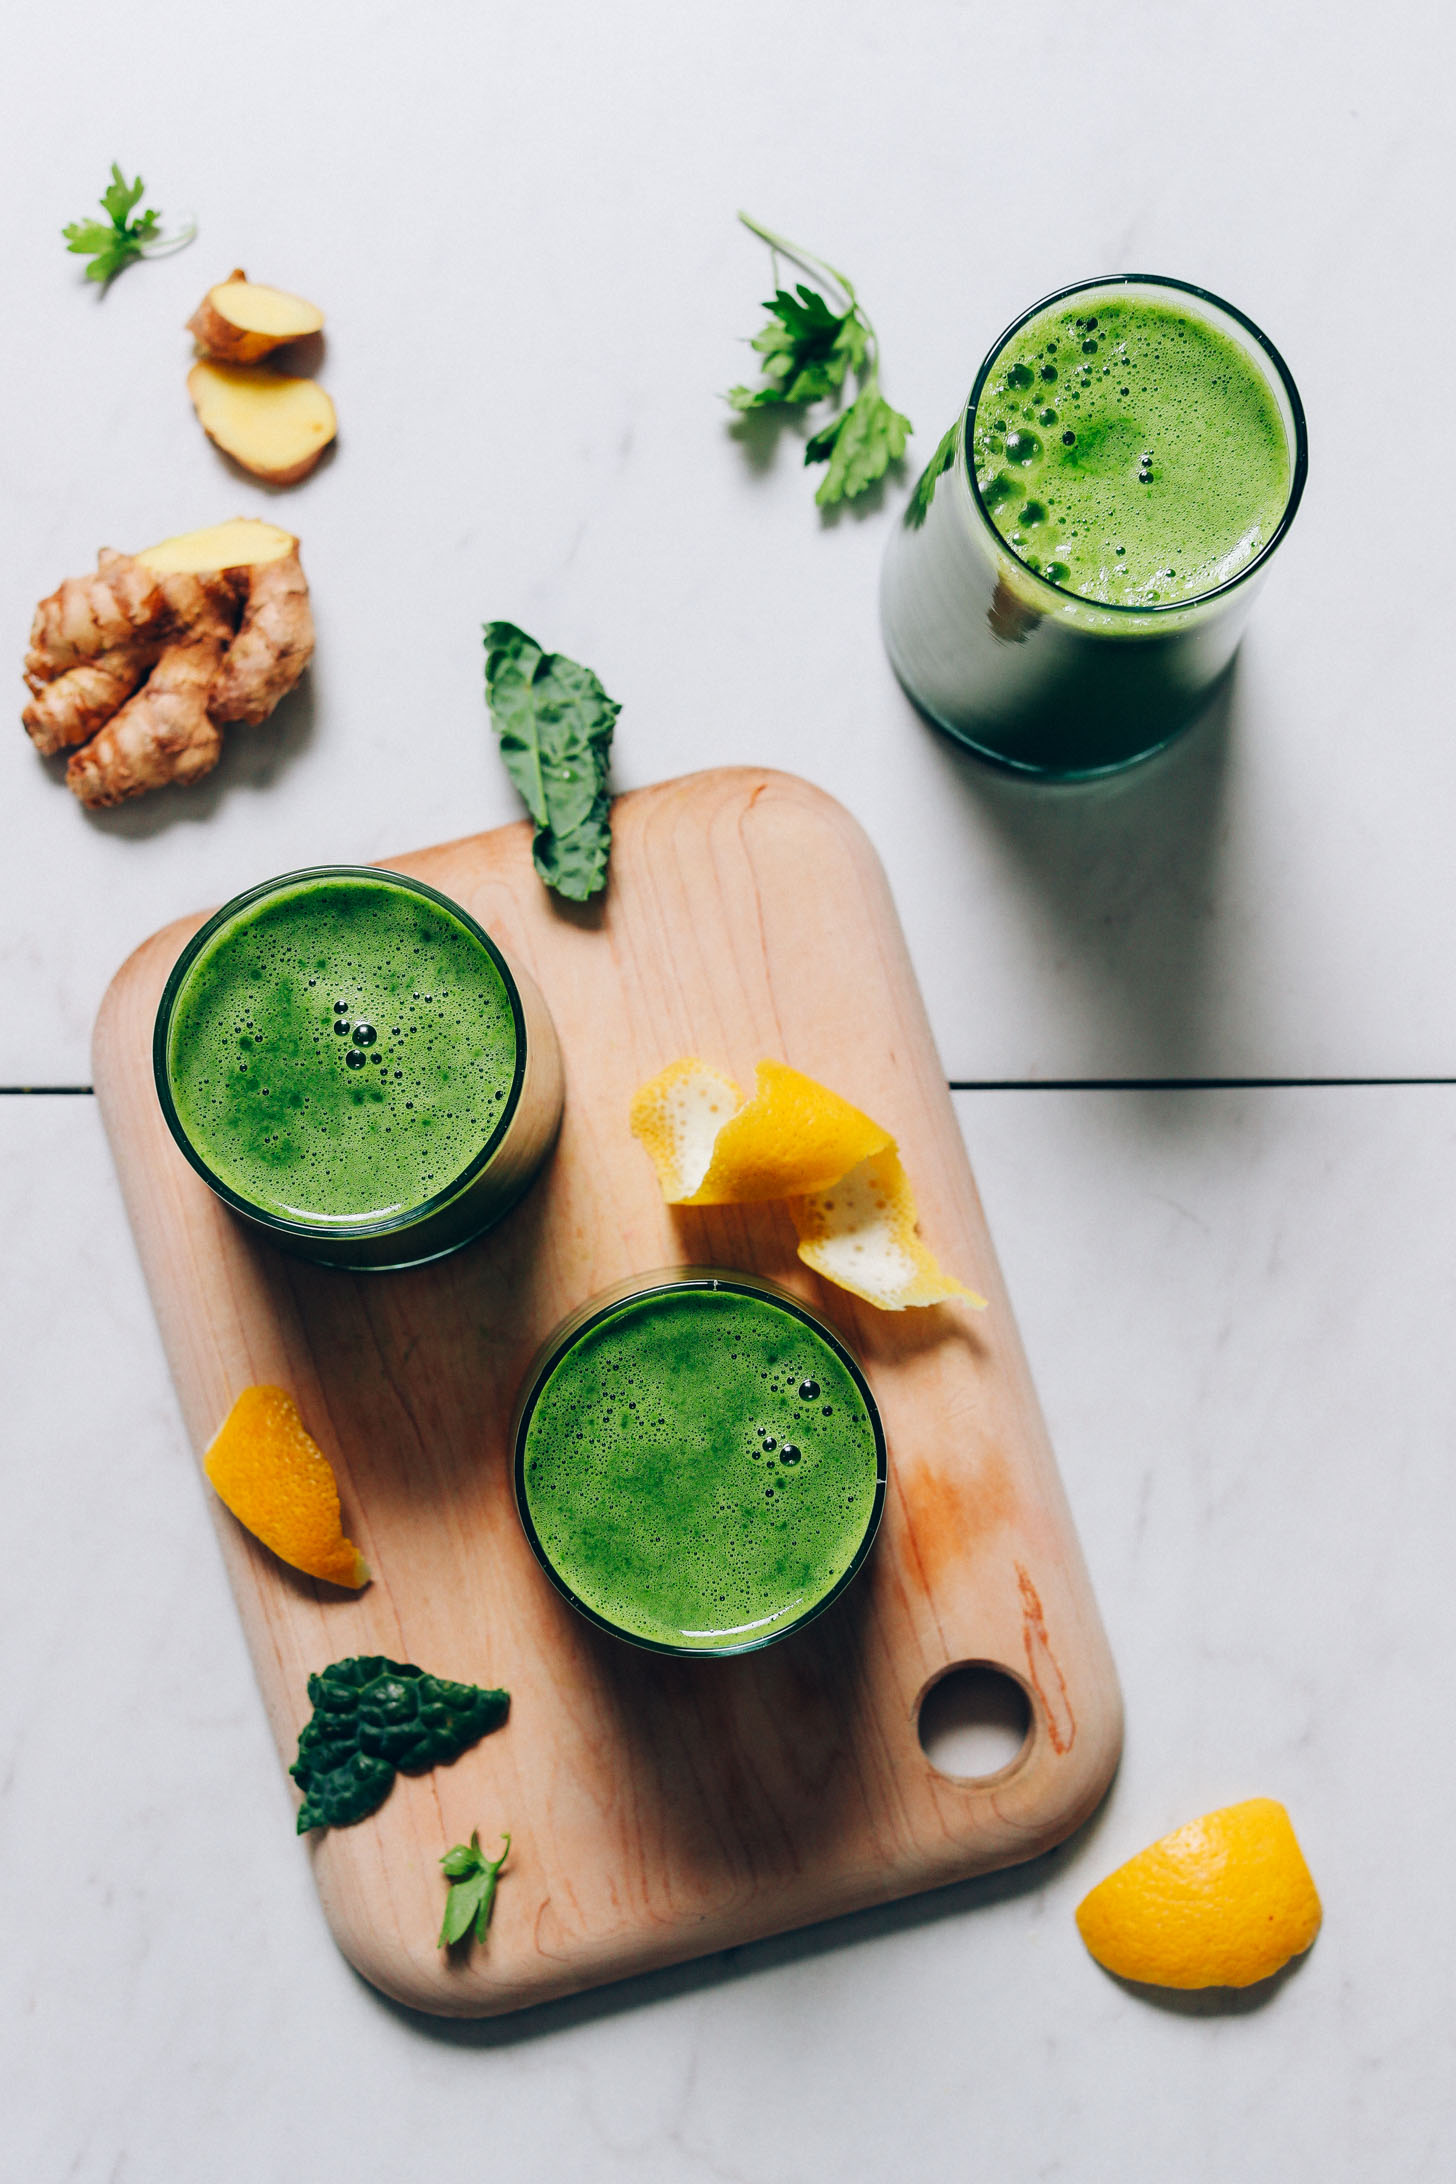 Cutting board with lemons, kale, ginger, and glasses of our Easy Green Juice recipe